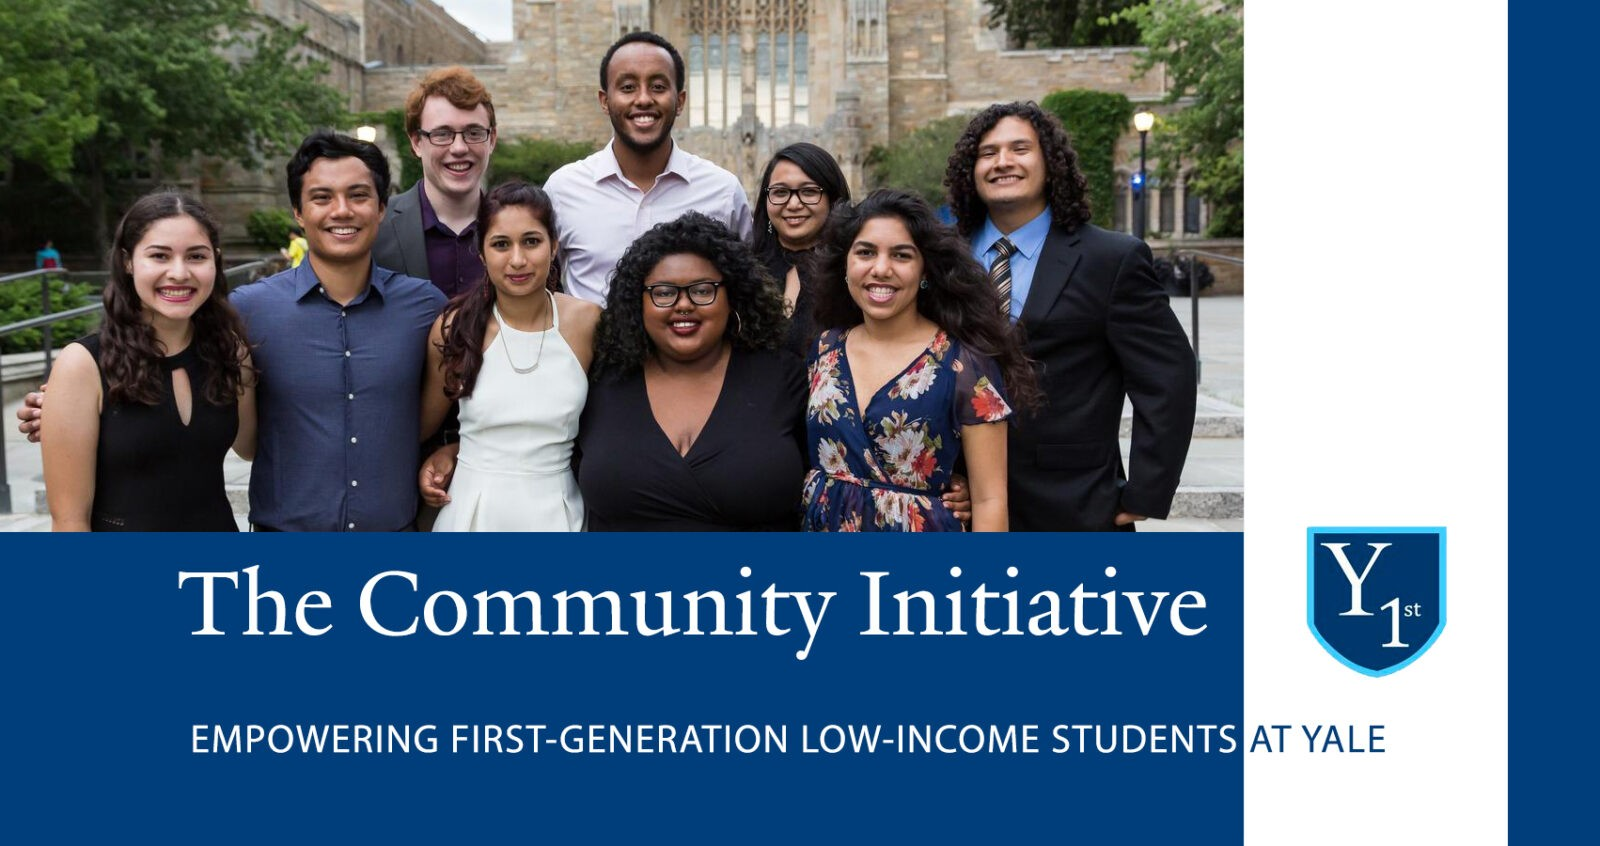 community Initiative at Yale